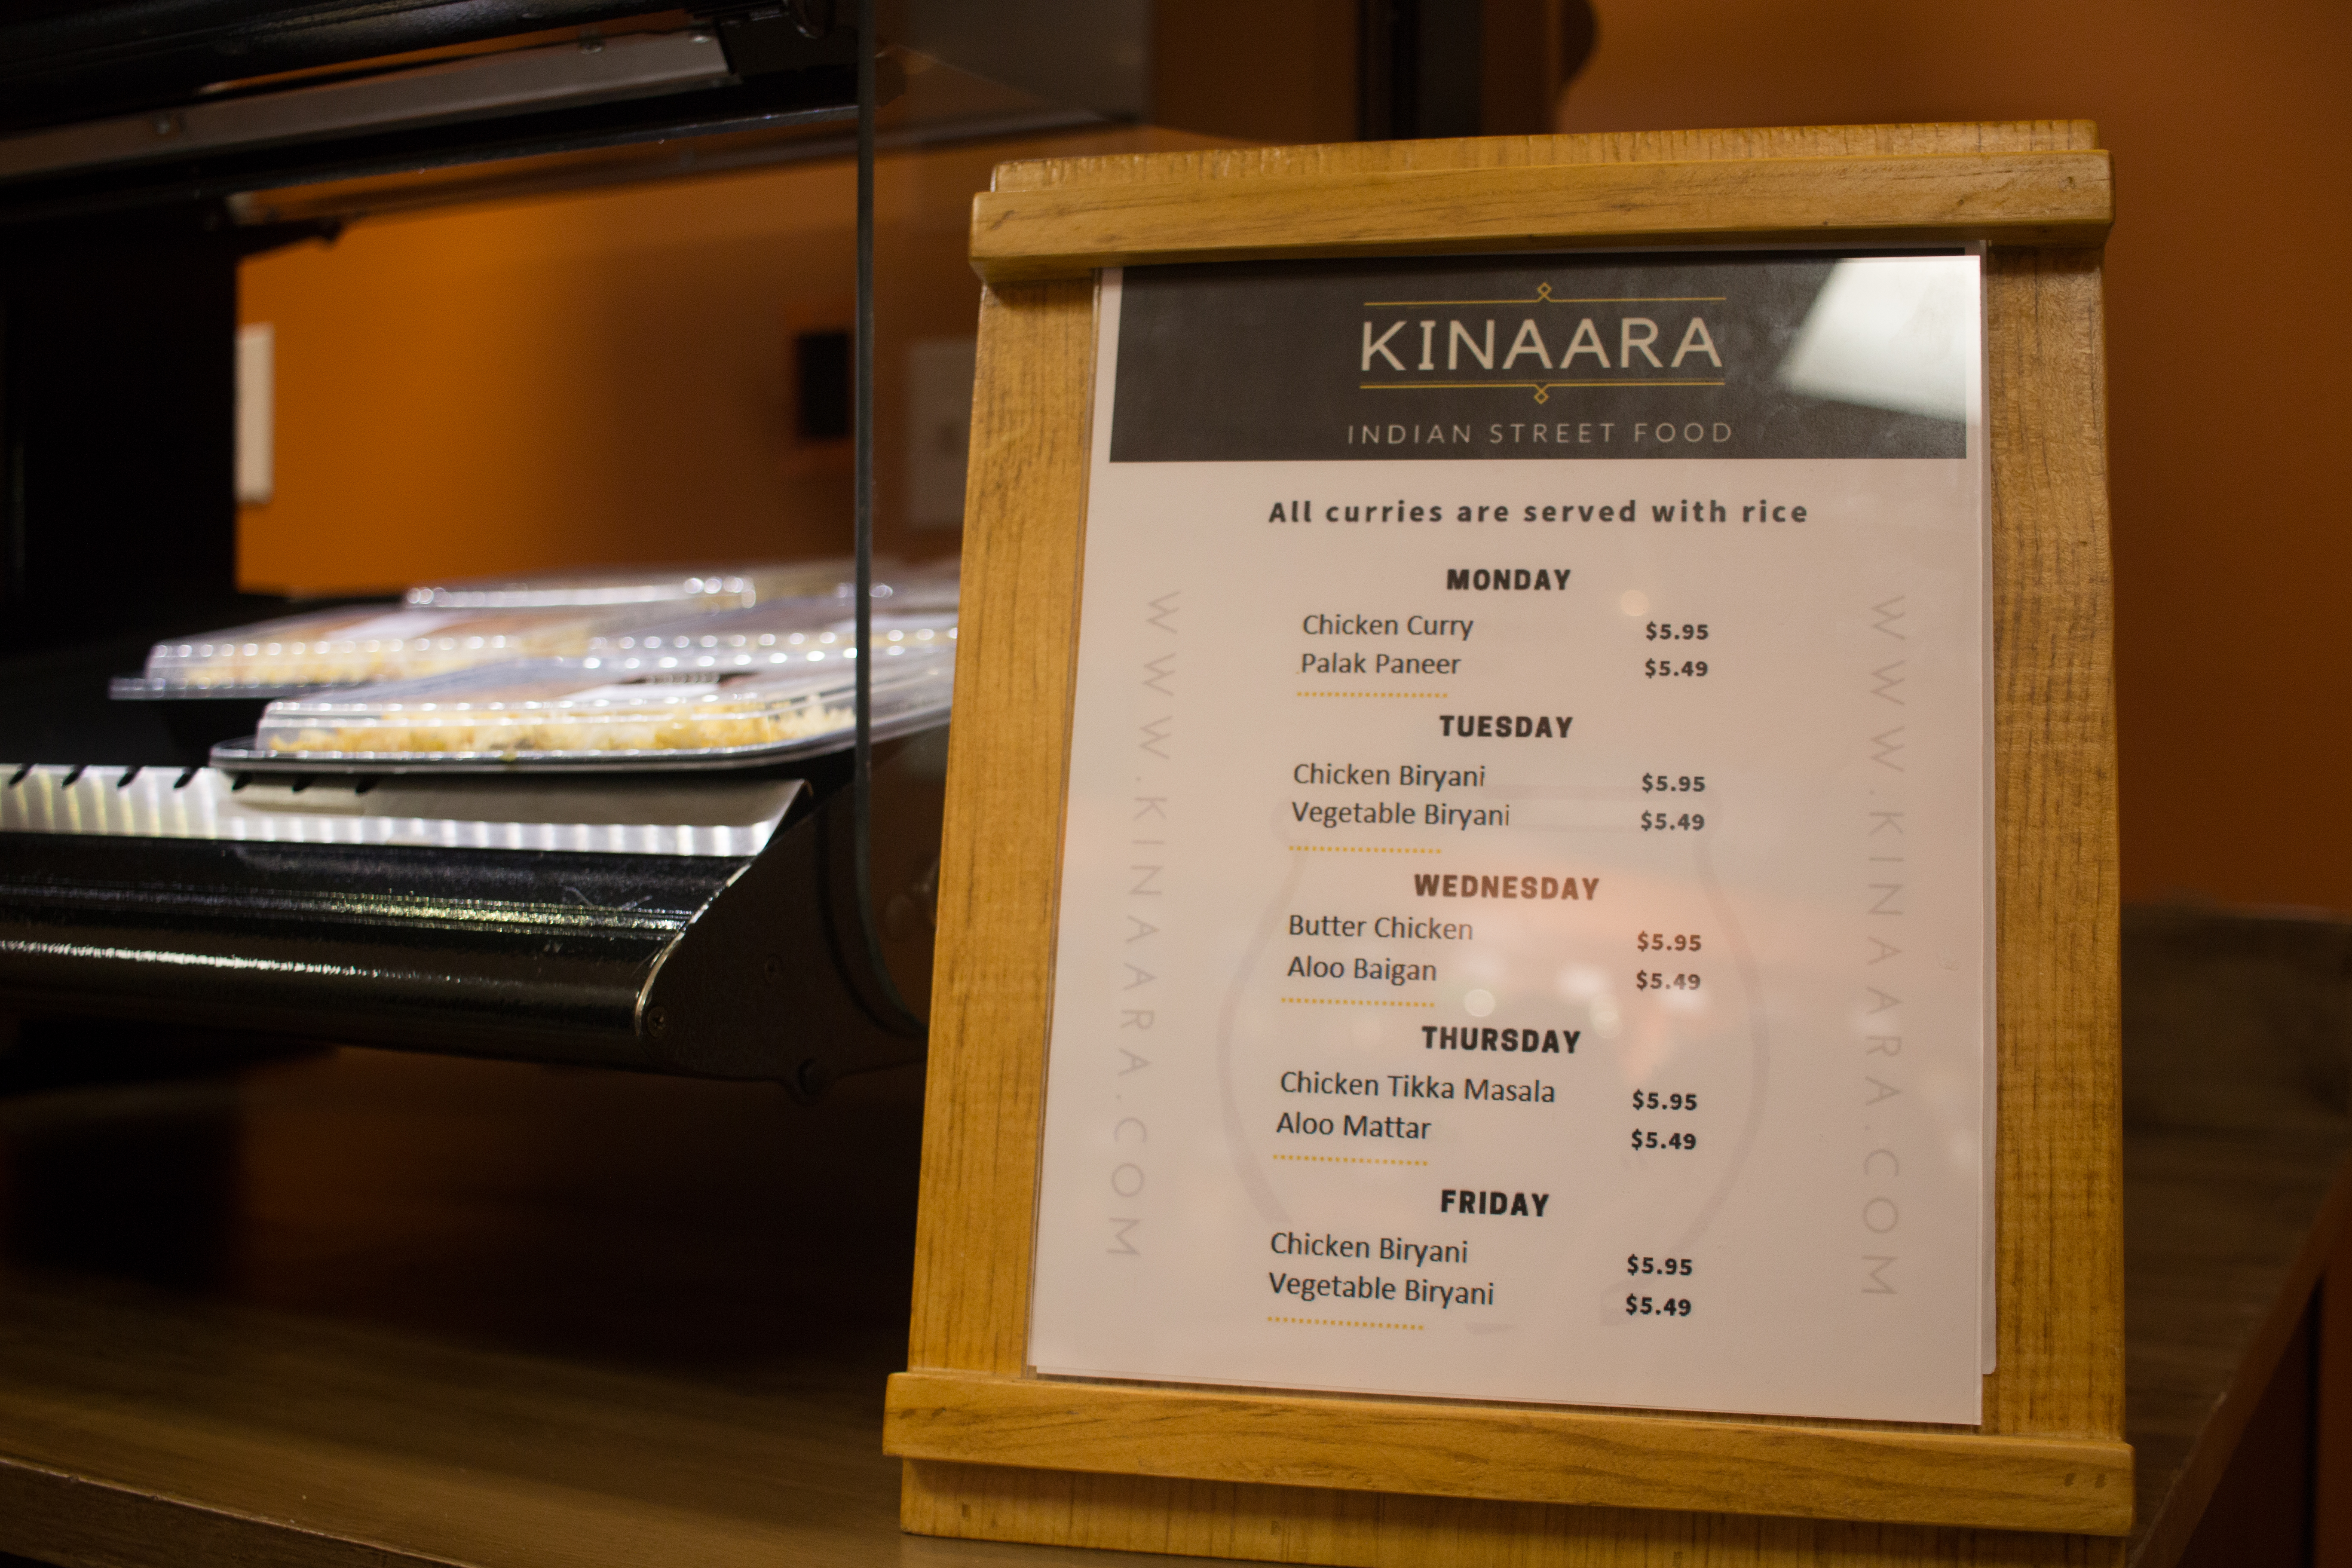 Classic Indian cuisine comes to campus